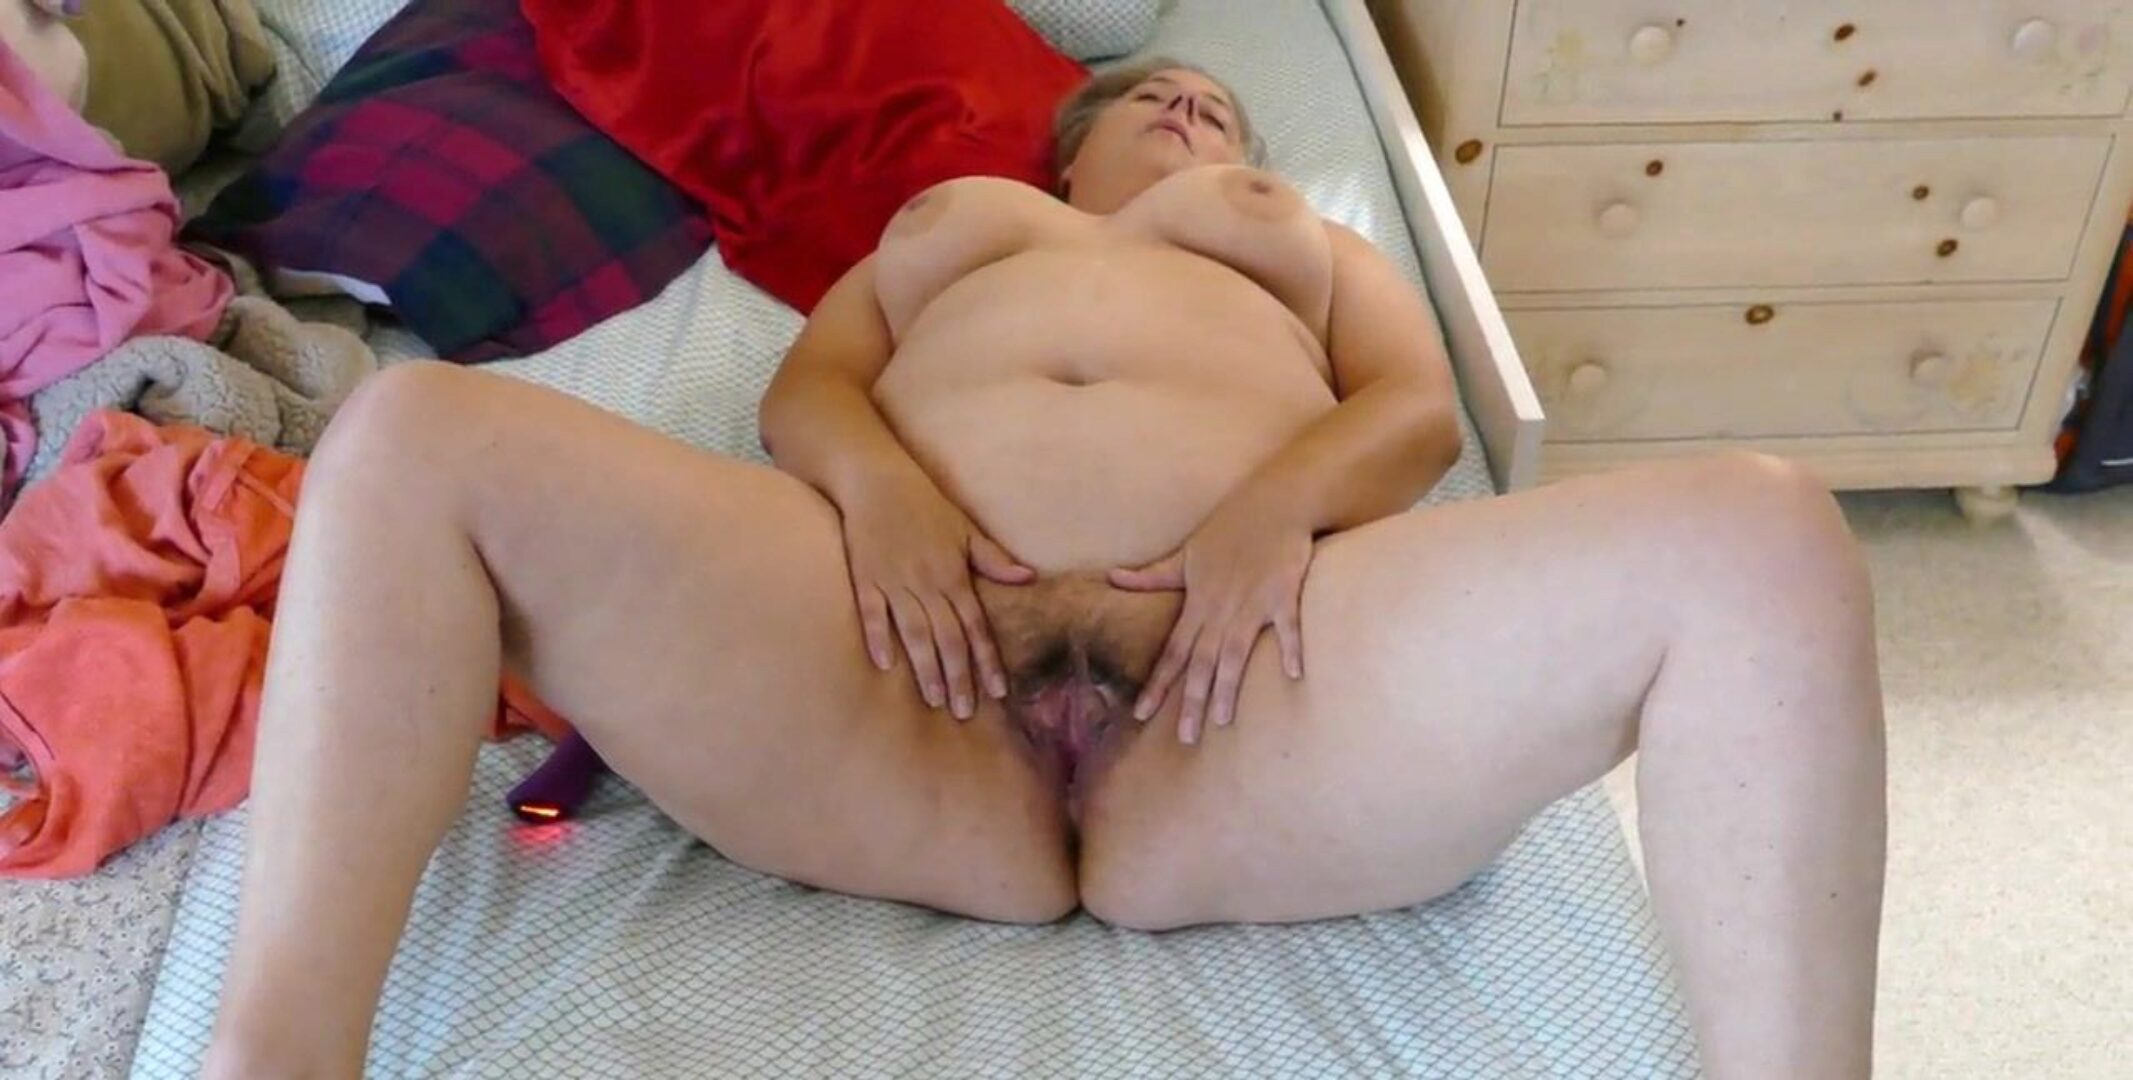 Watching My Chubby big beautiful woman Stepmom Masturbate with Her Big Watch Watching My Chubby BBW Stepmom Masturbate with Her Big Dildo movie on xHamster - the ultimate database of free mother I'd like to fuck & Mom HD porno tube movie scenes